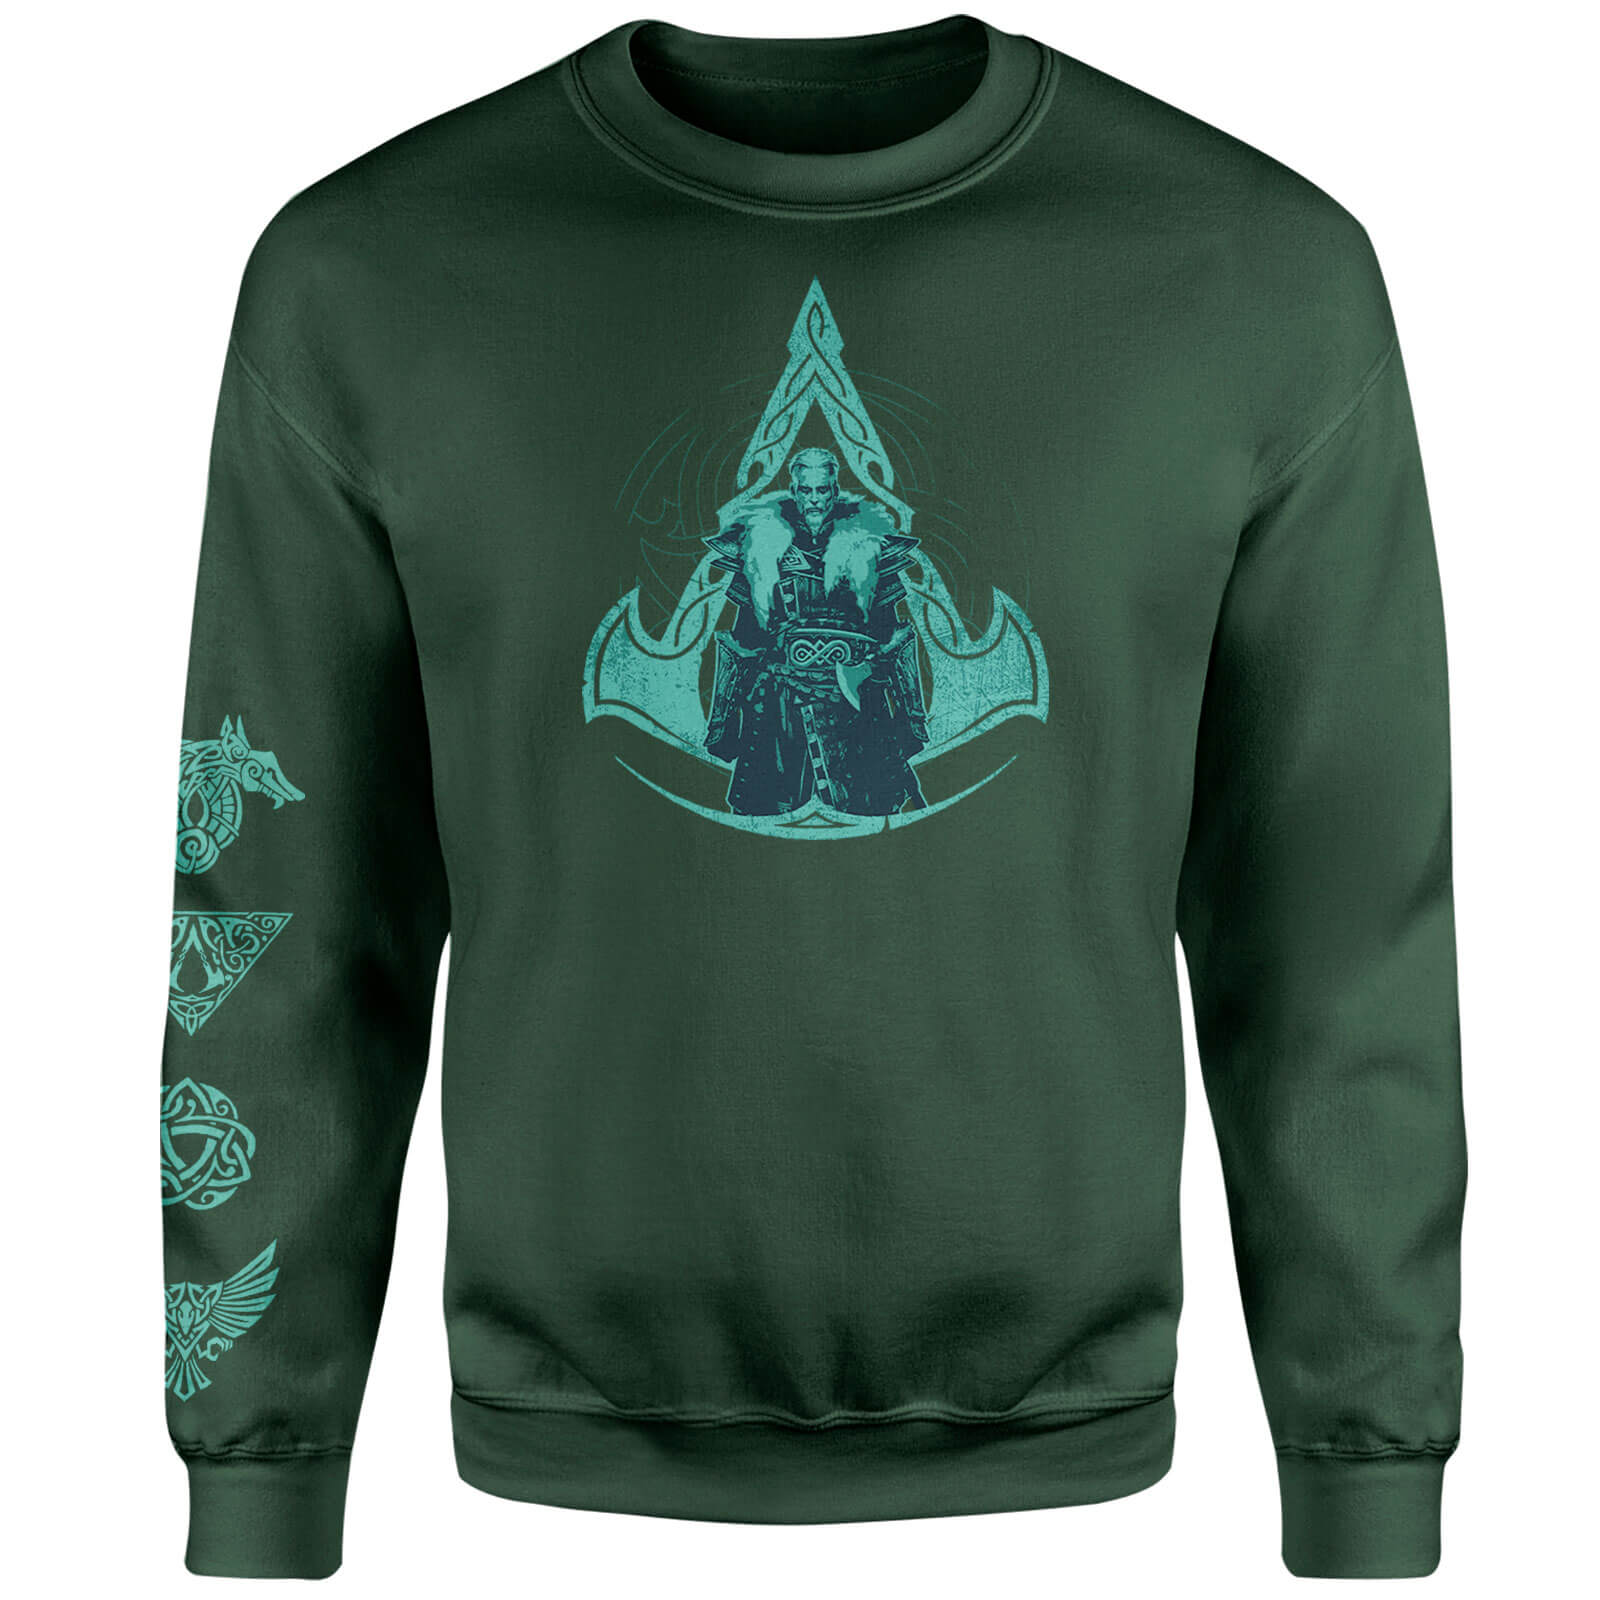 Assassins Creed Character Icon Sweatshirt - Forest Green - L - Forest Green